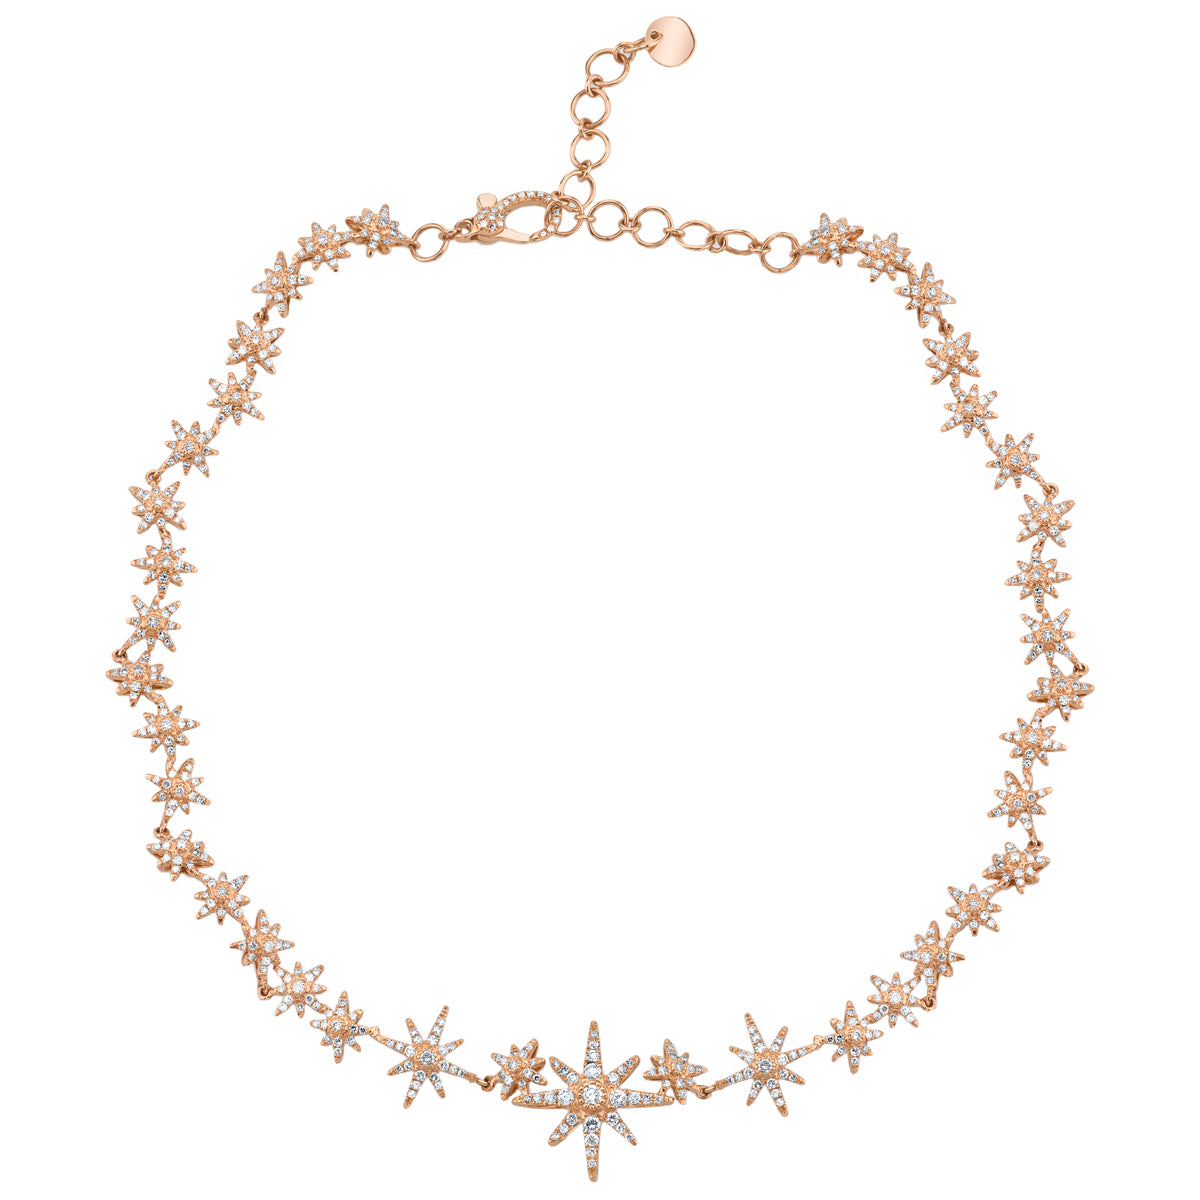 Connect the Stars Choker by Shay for Broken English Jewelry